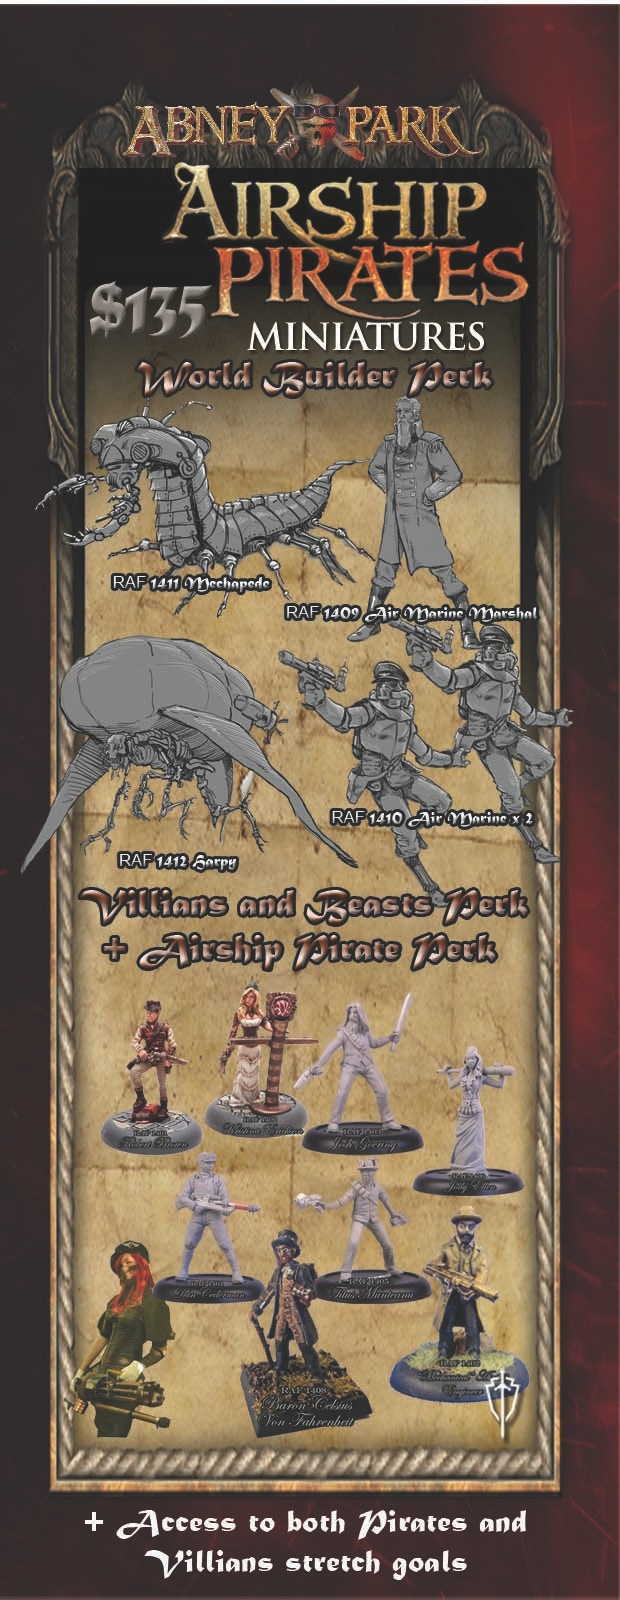 World Builder Perk - All miniatures are shipped unpainted 32mm metal miniatures